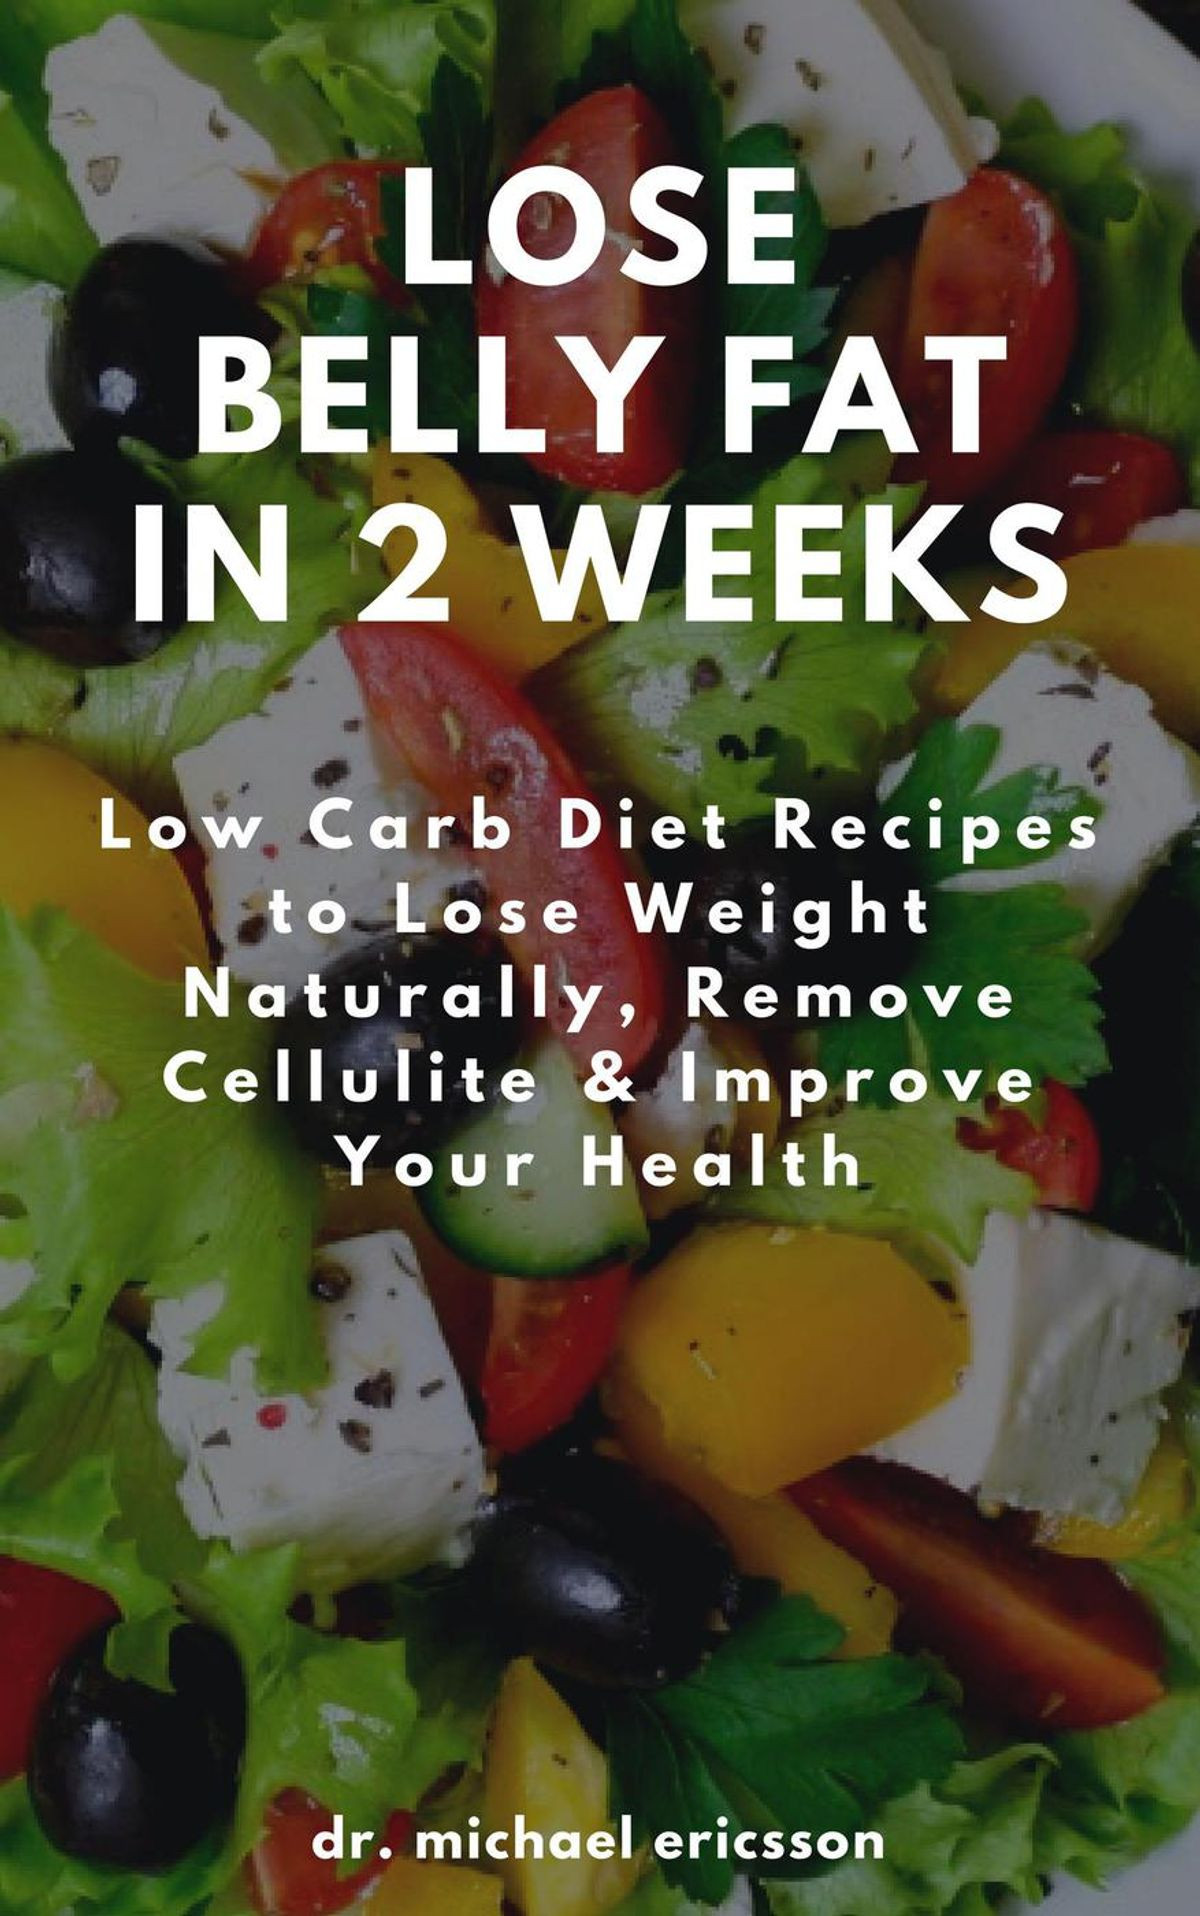 Low Carb Diet Recipes Losing Weight  Lose Belly Fat in 2 Weeks Low Carb Diet Recipes to Lose